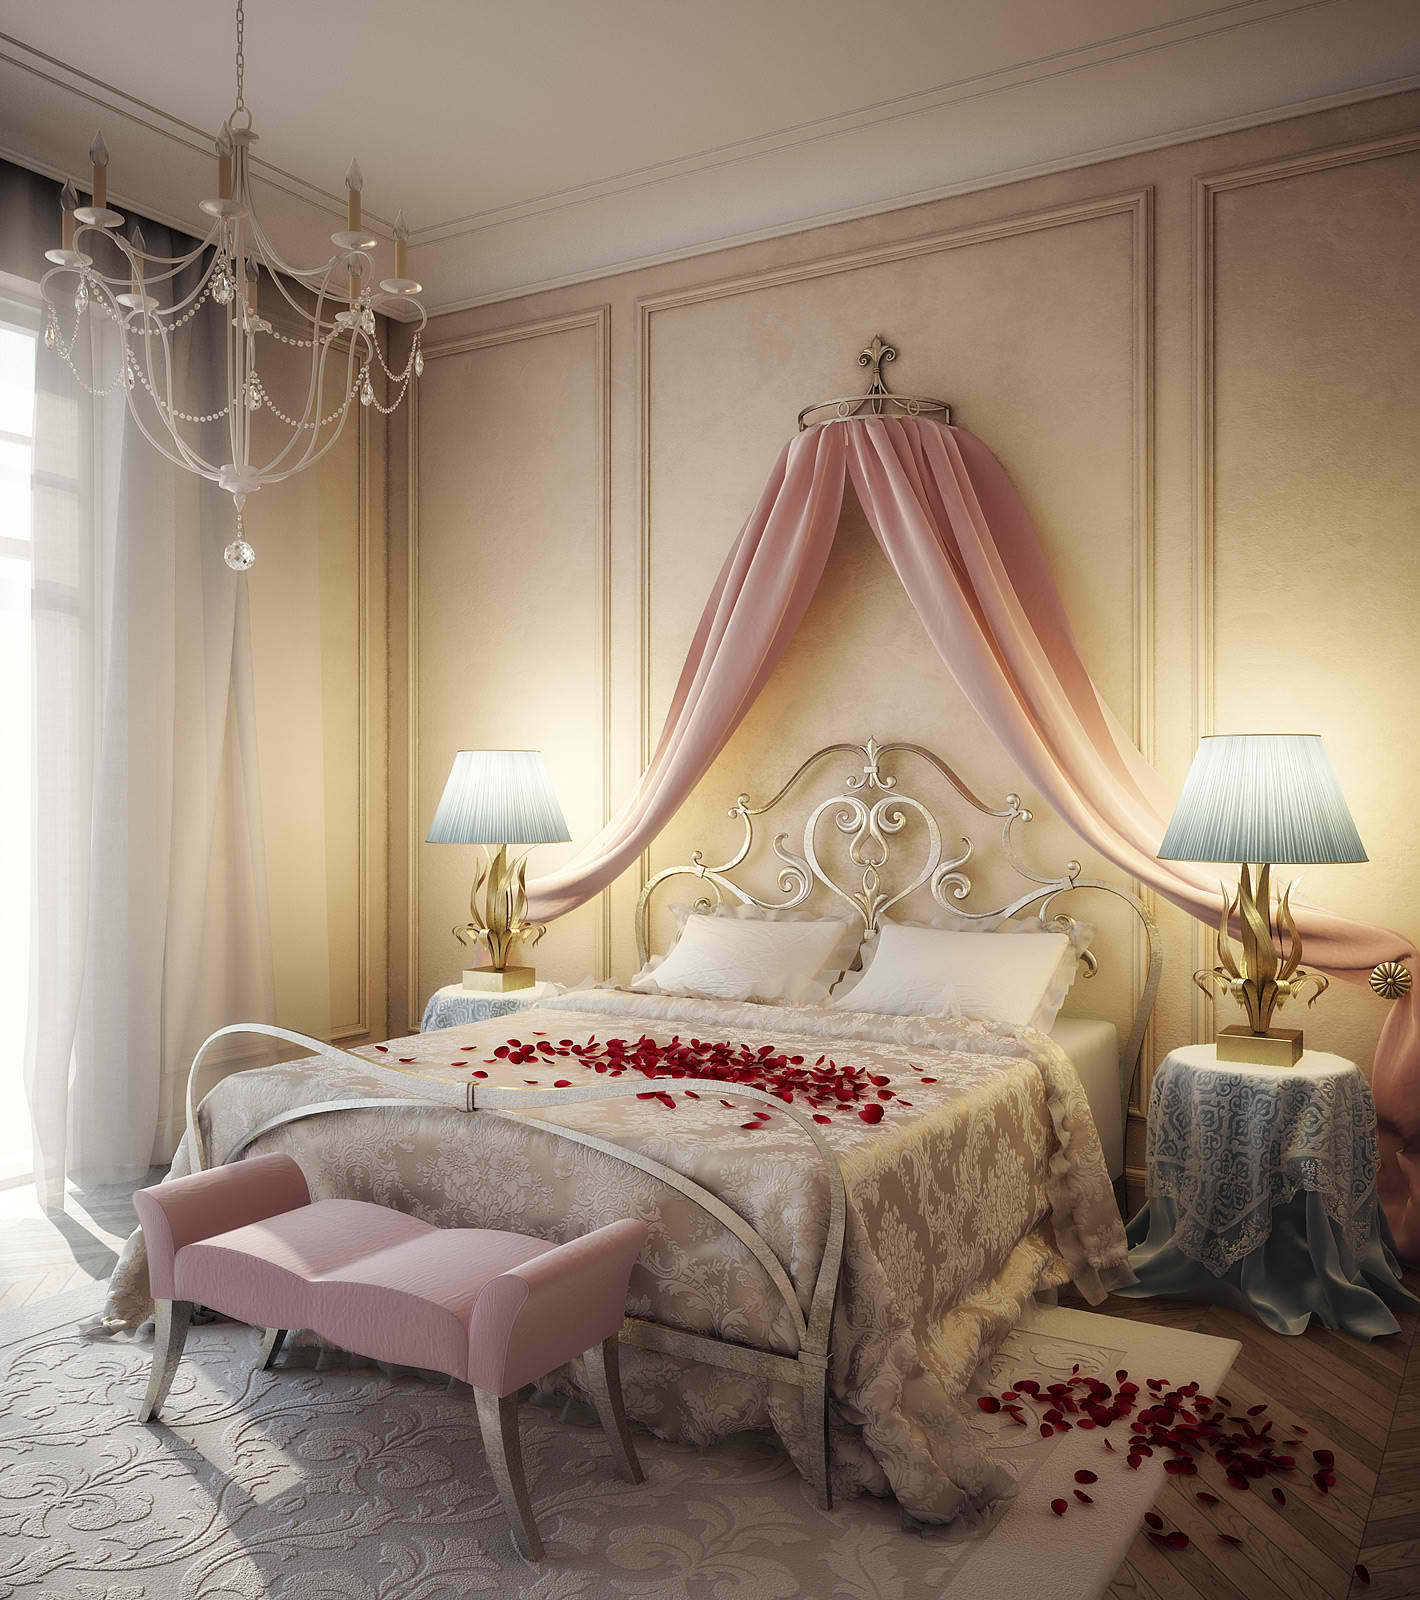 20 romantic bedroom ideas decoholic romantic bedroom ideas ideal home